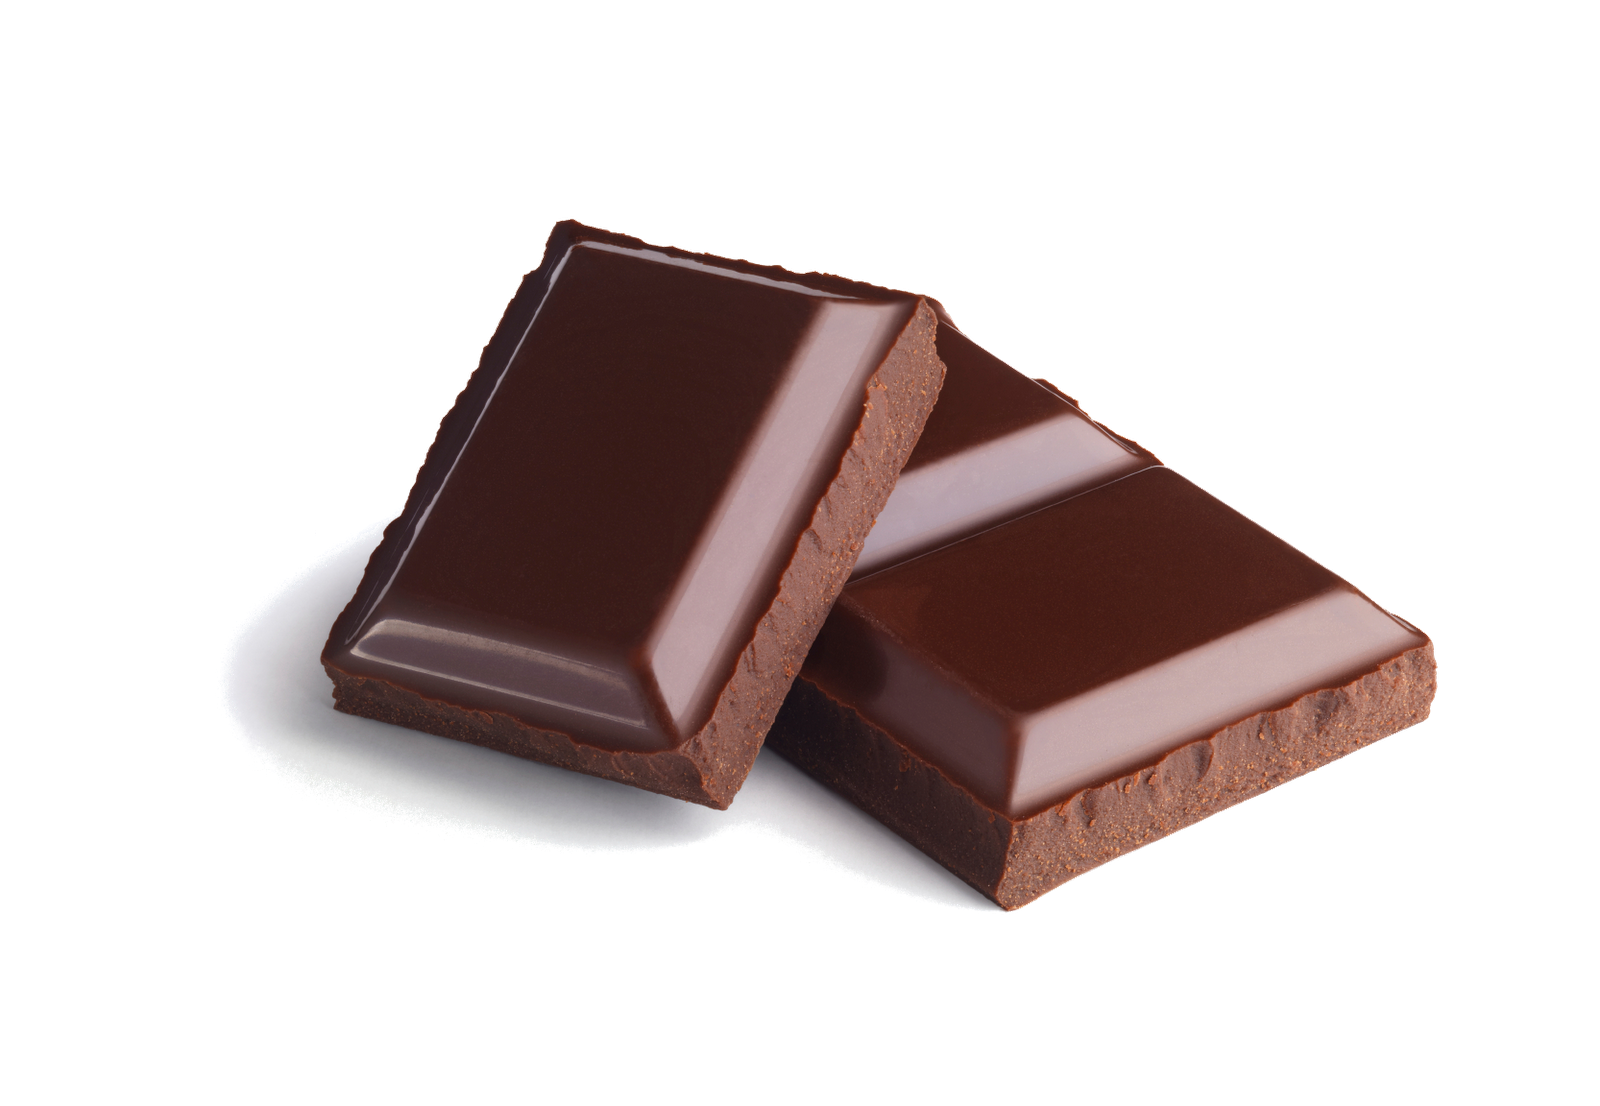 Chocolate PNG HD - 125779